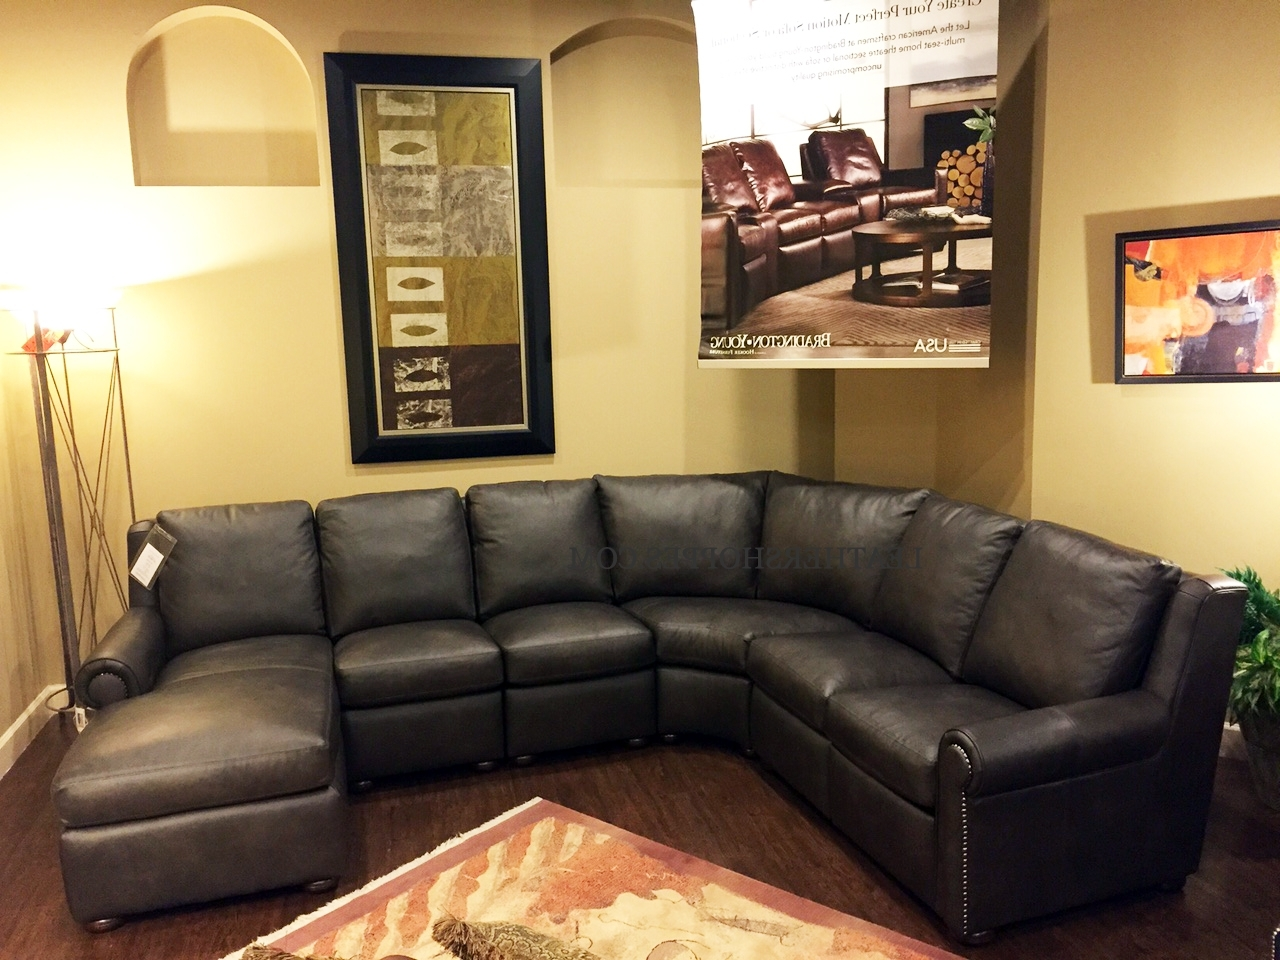 High End Leather Sectional Sofas Within Well Known Bradington Young Luxury Motion Furniture Made In The Usa (View 8 of 20)